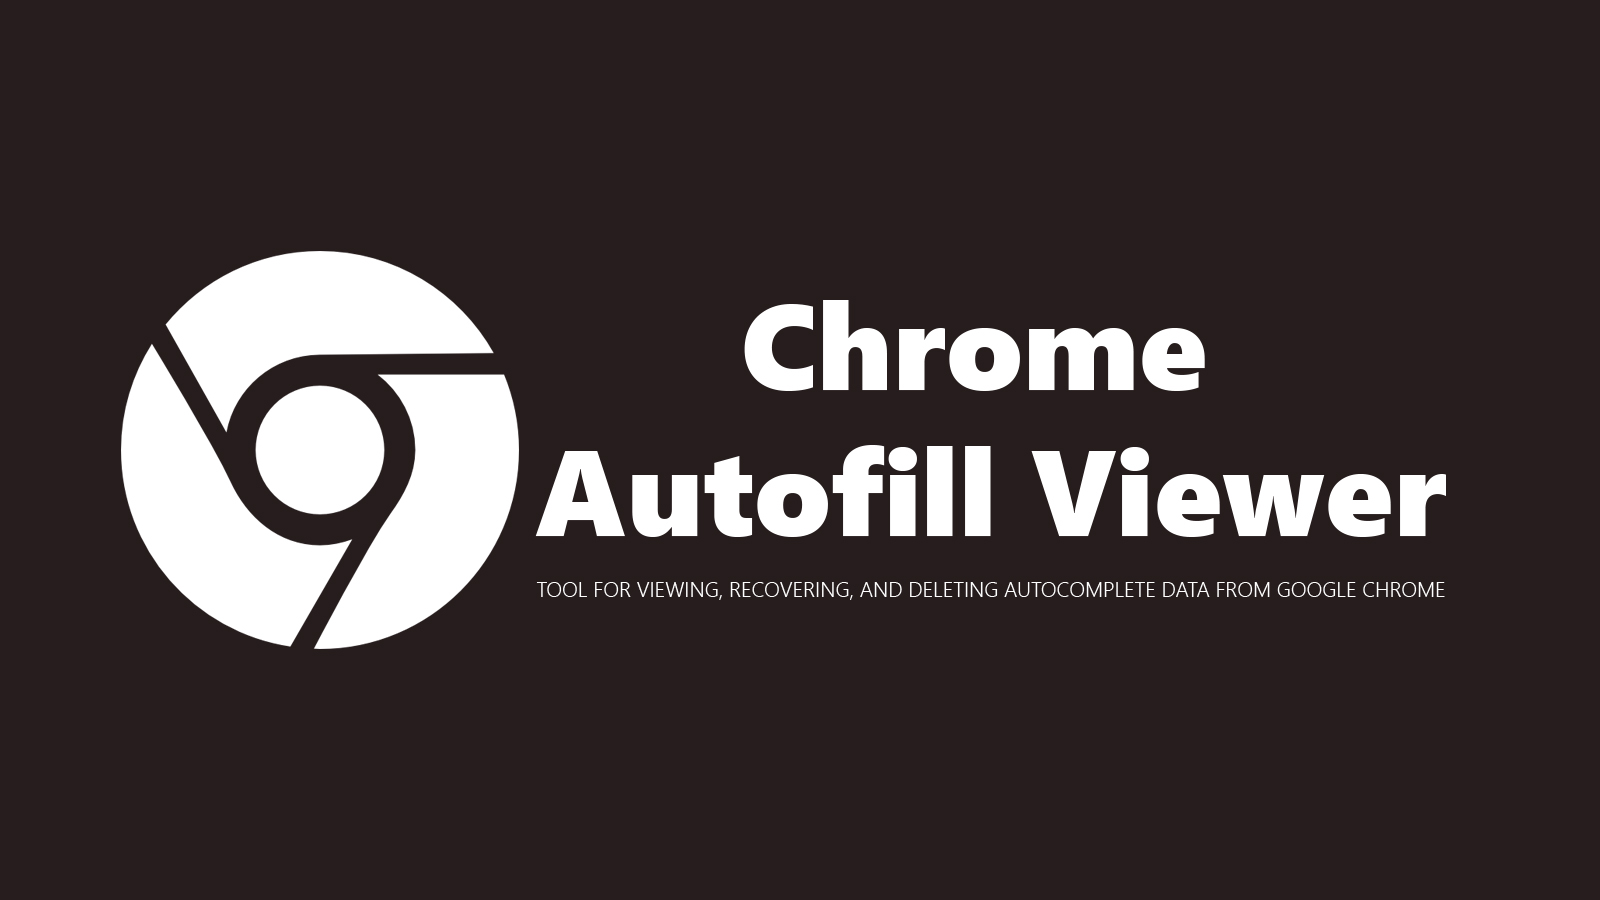 Chrome Autofill Viewer - Tool For Viewing, Recovering, and Deleting Autocomplete Data From Google Chrome